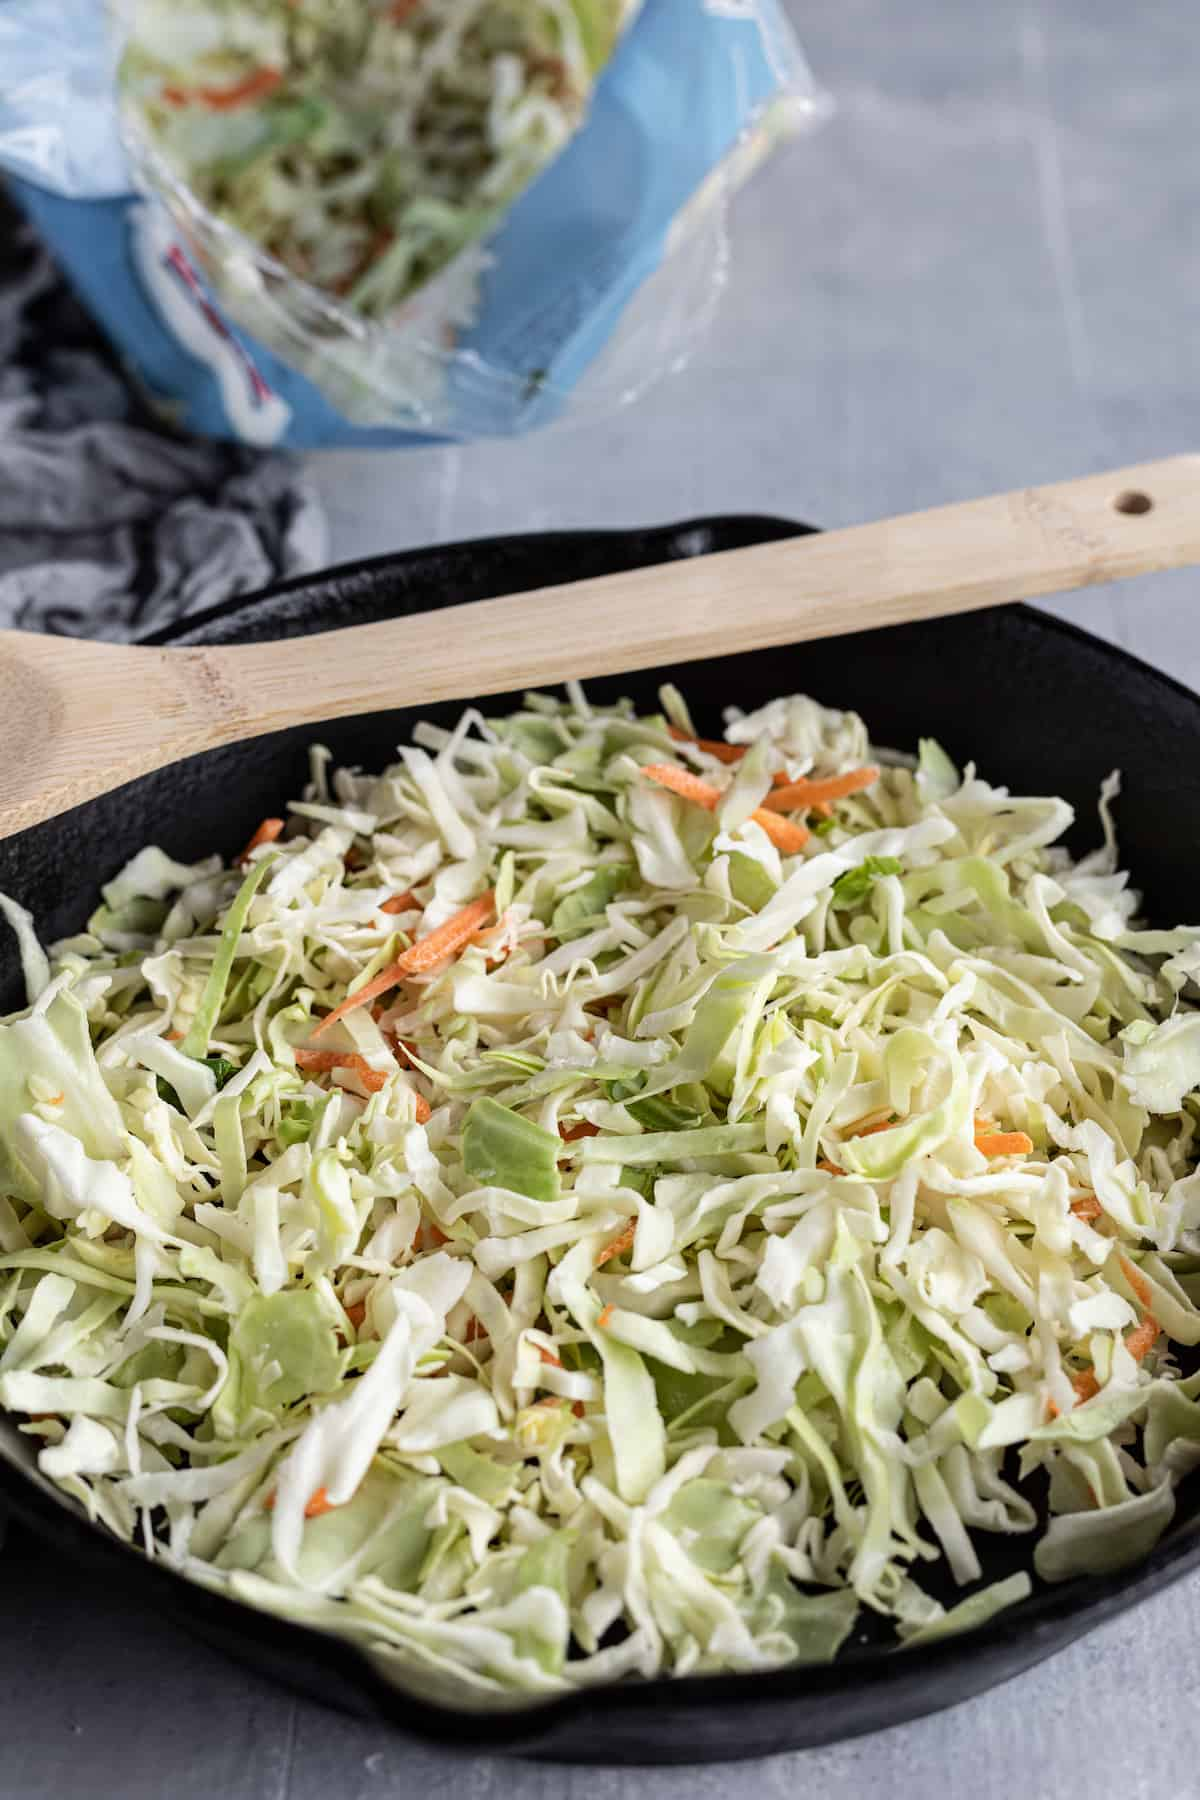 Cabbage Coleslaw in a Pan with a Wooden Spoon